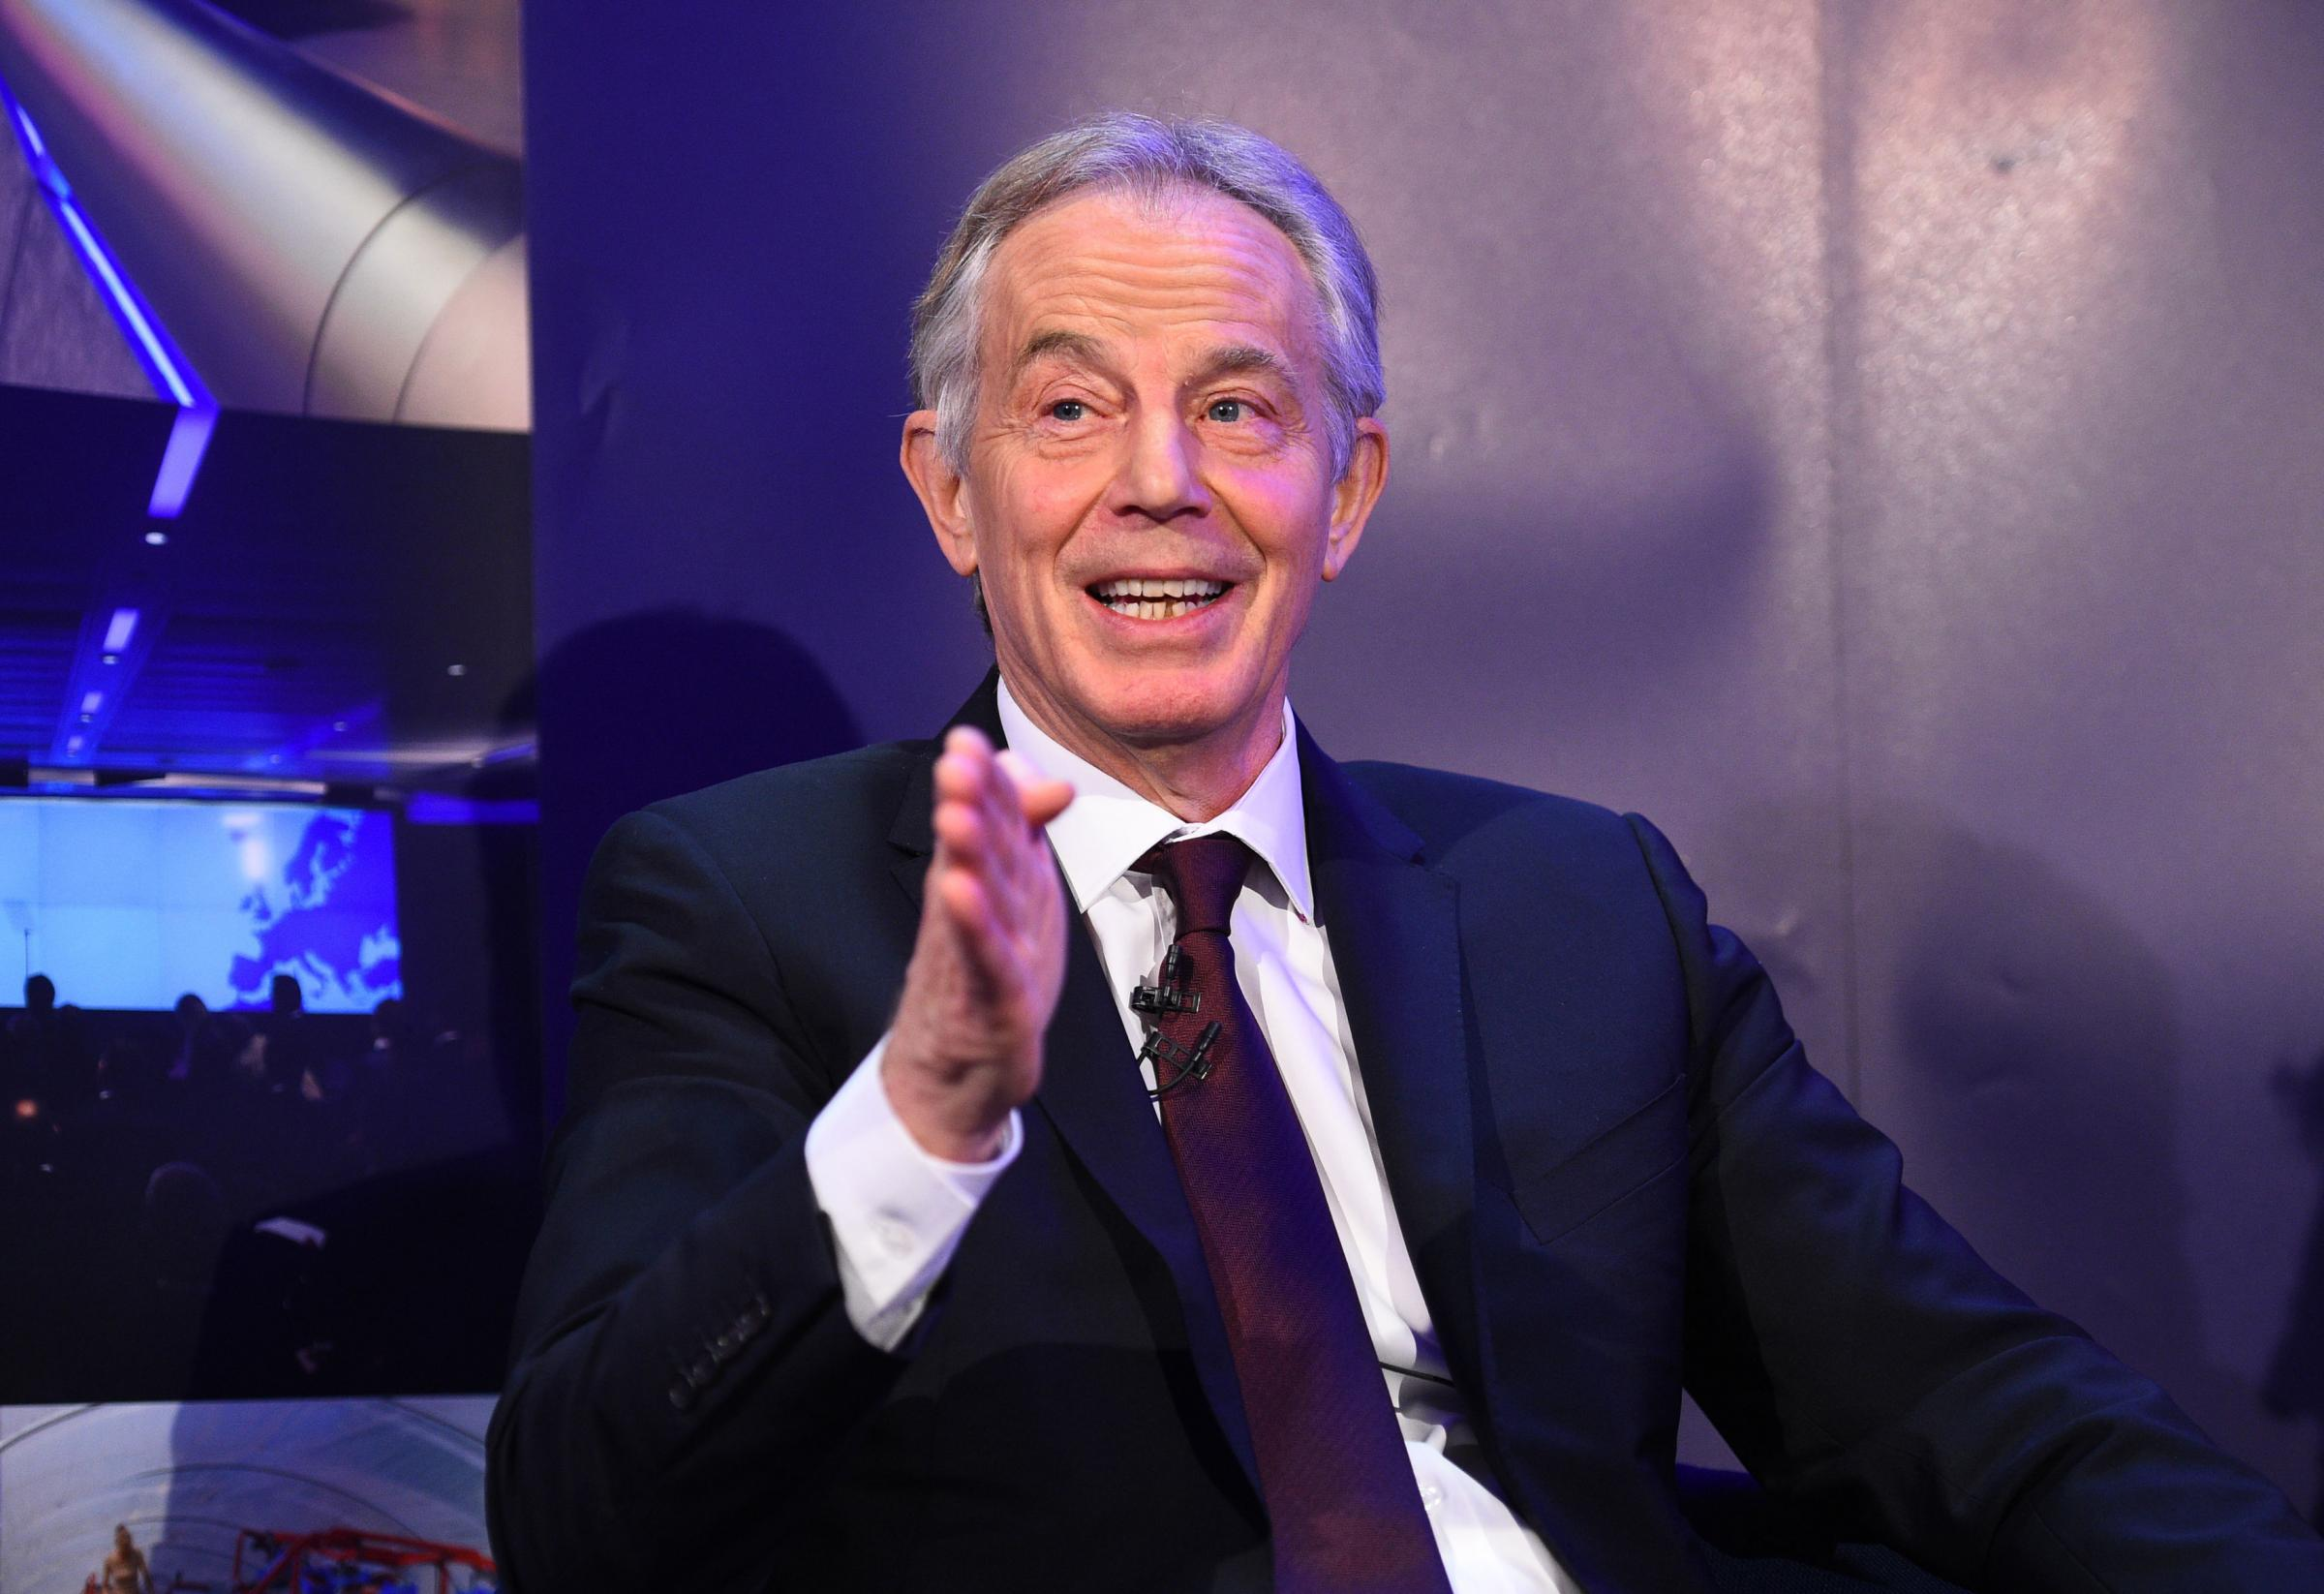 If laws can't be broken will Tony Blair turn himself in as war criminal?